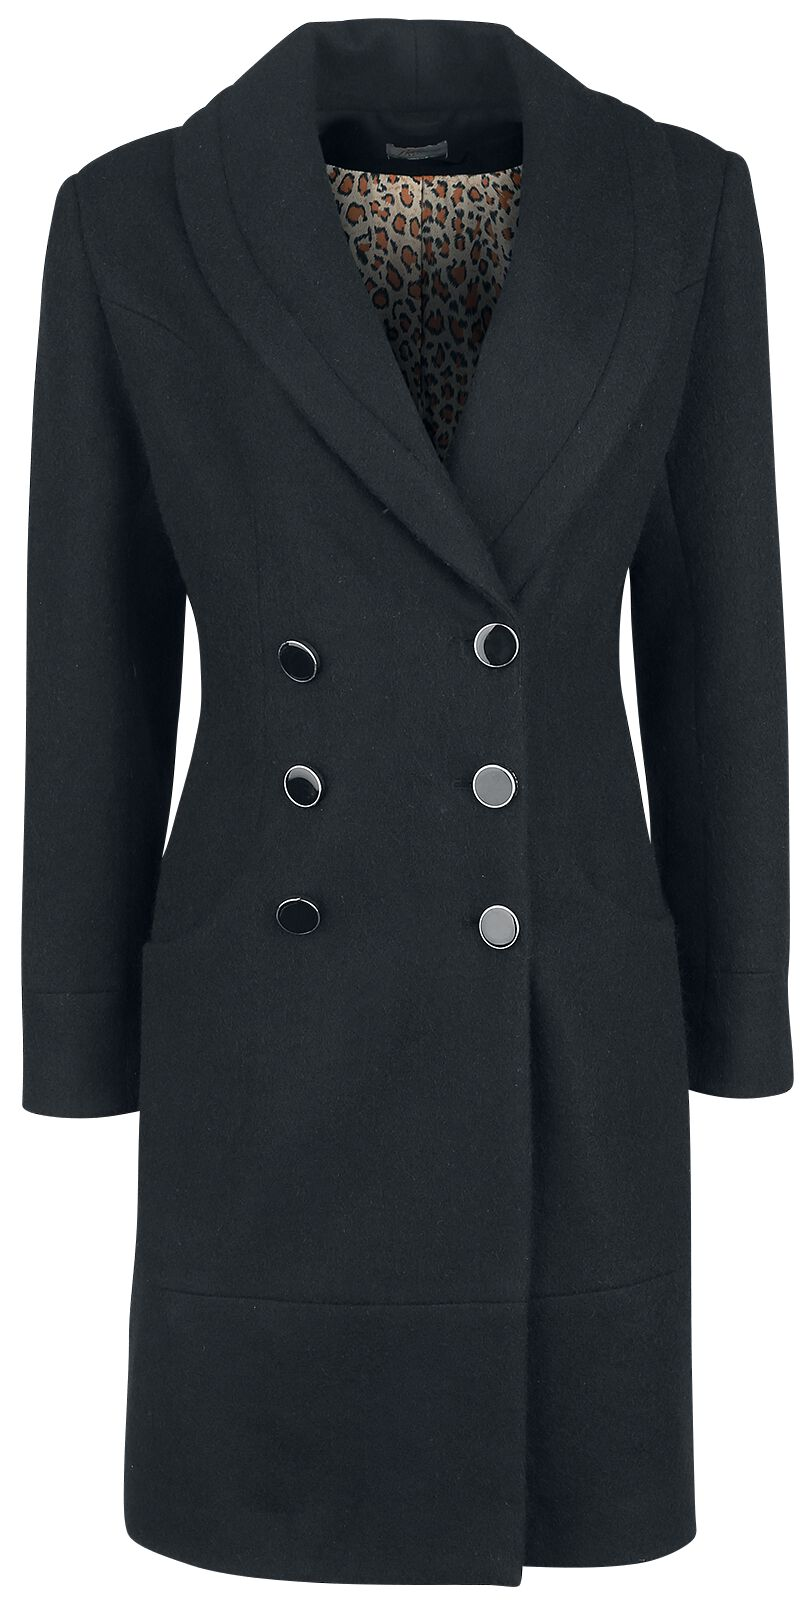 Image of Banned Retro Rocking Coat Cappotto donna nero